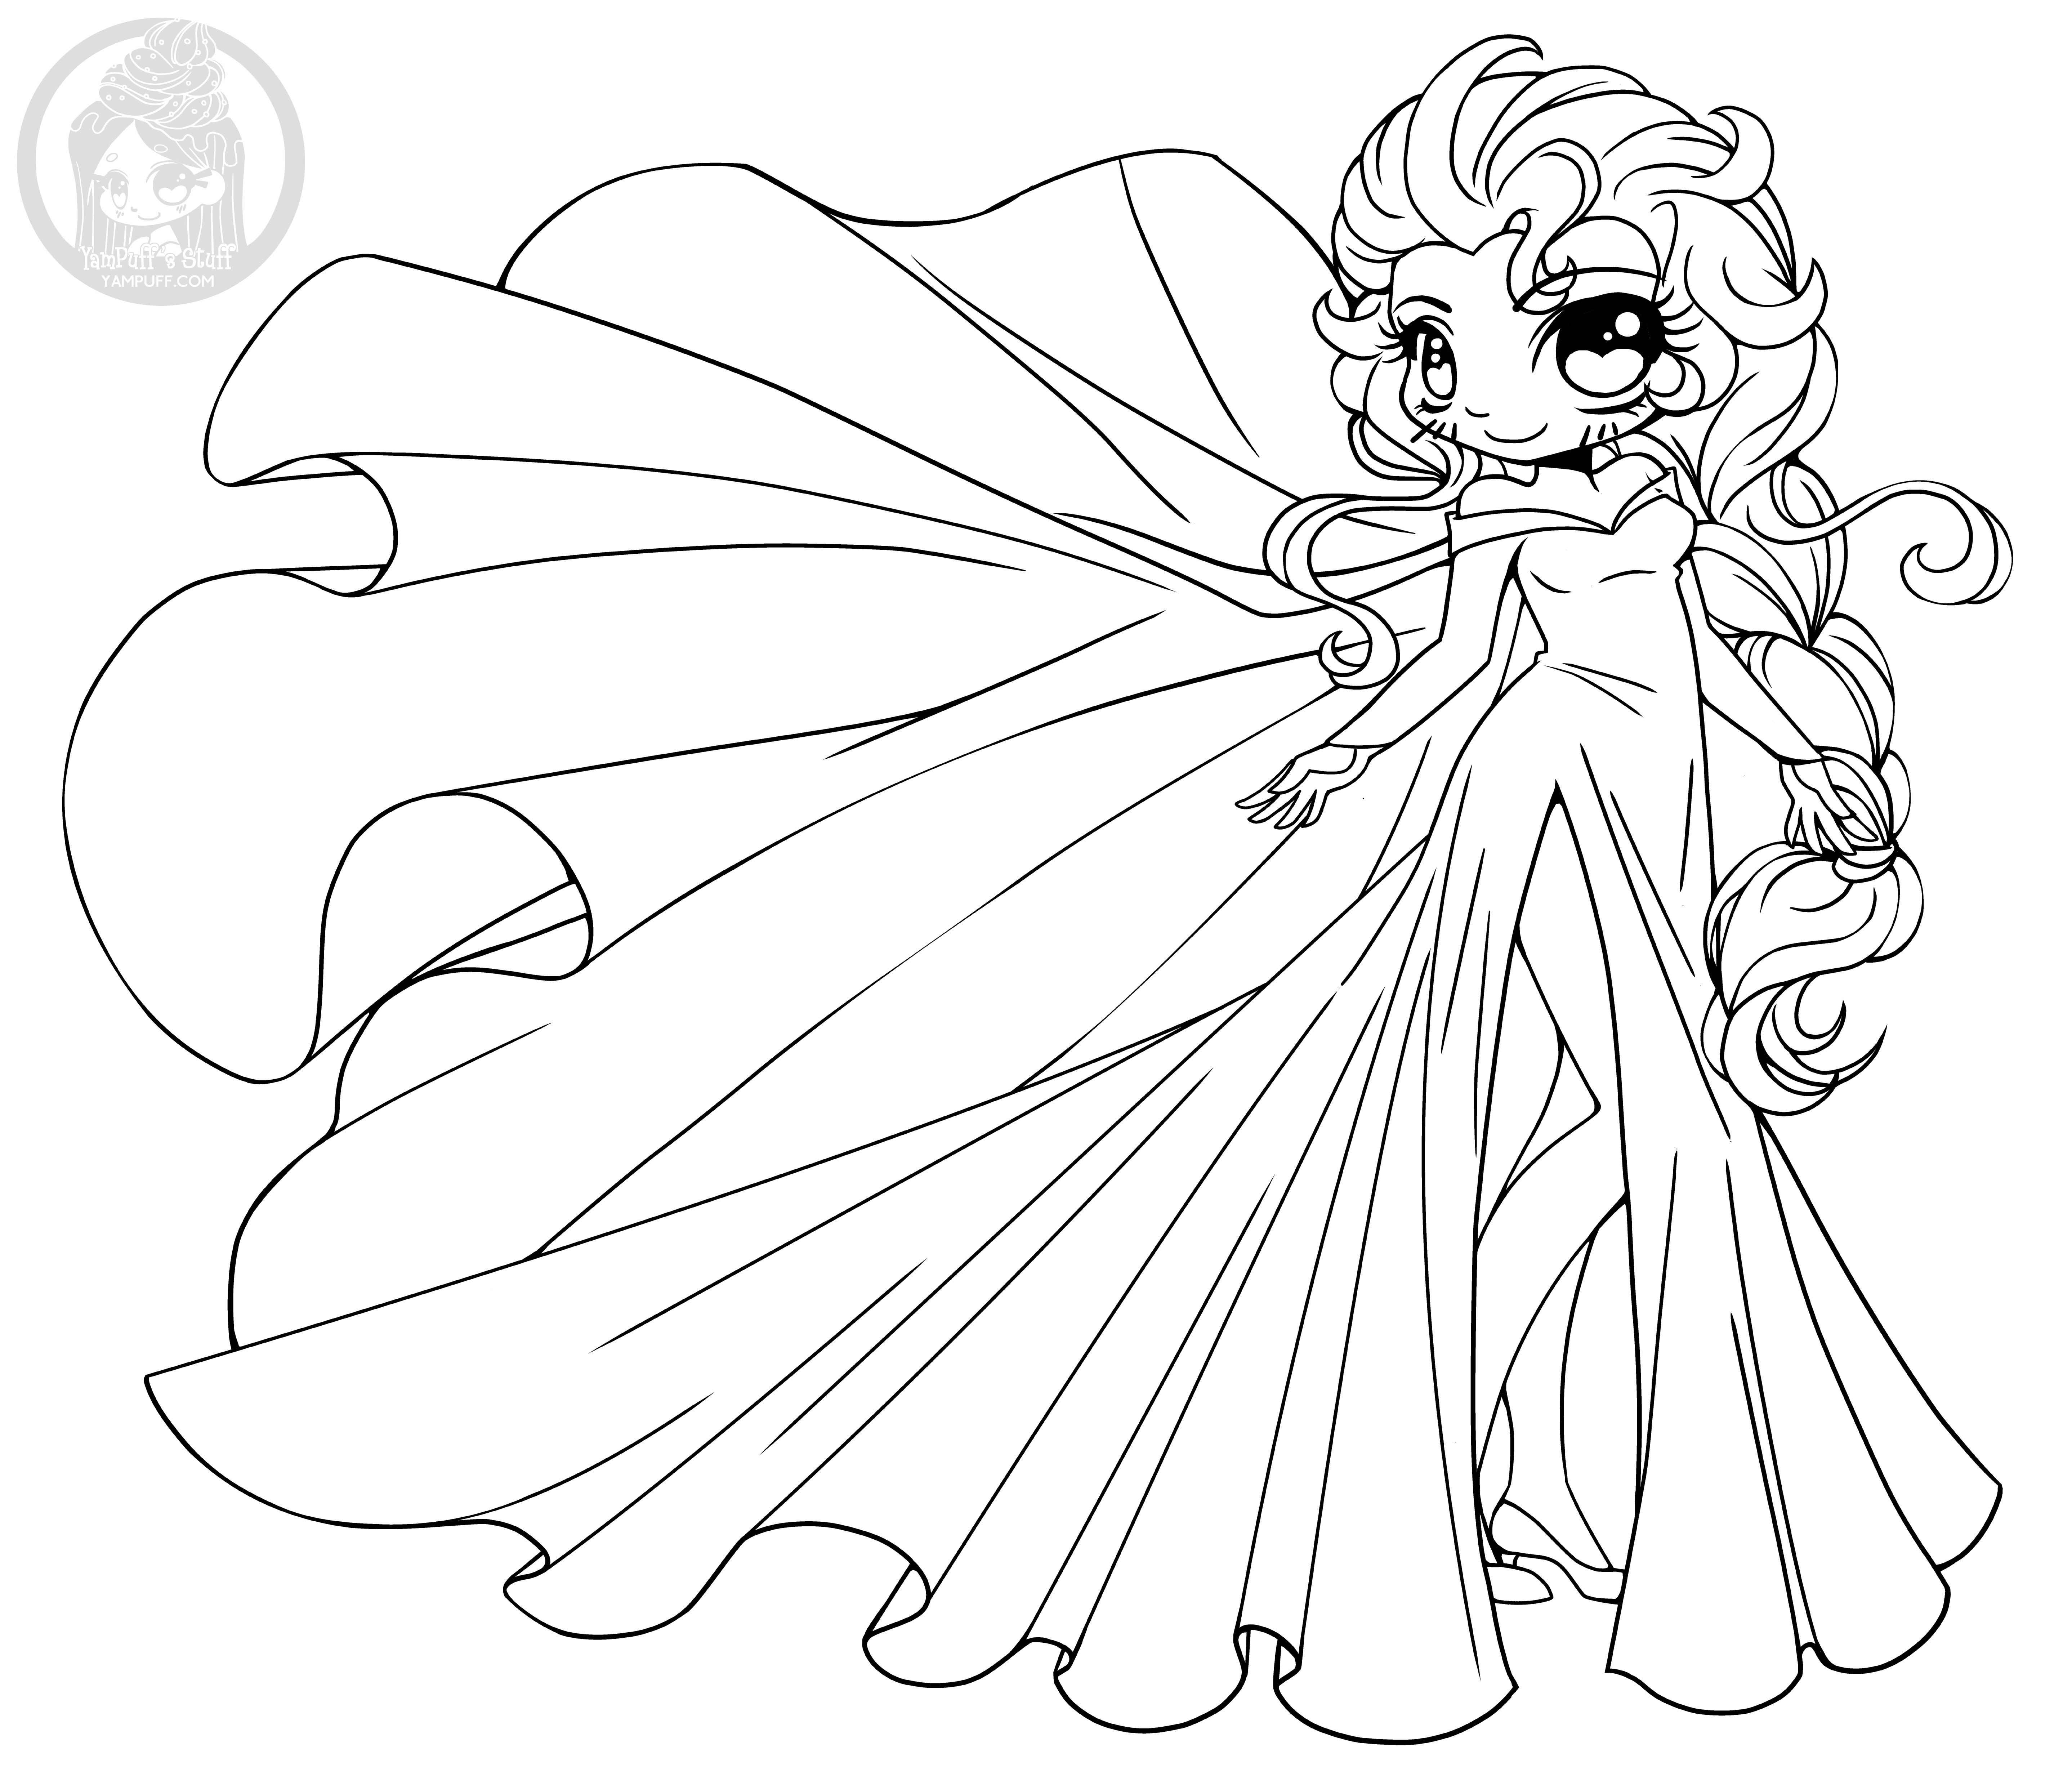 20+ Great Image of Chibi Coloring Pages - davemelillo.com  Chibi